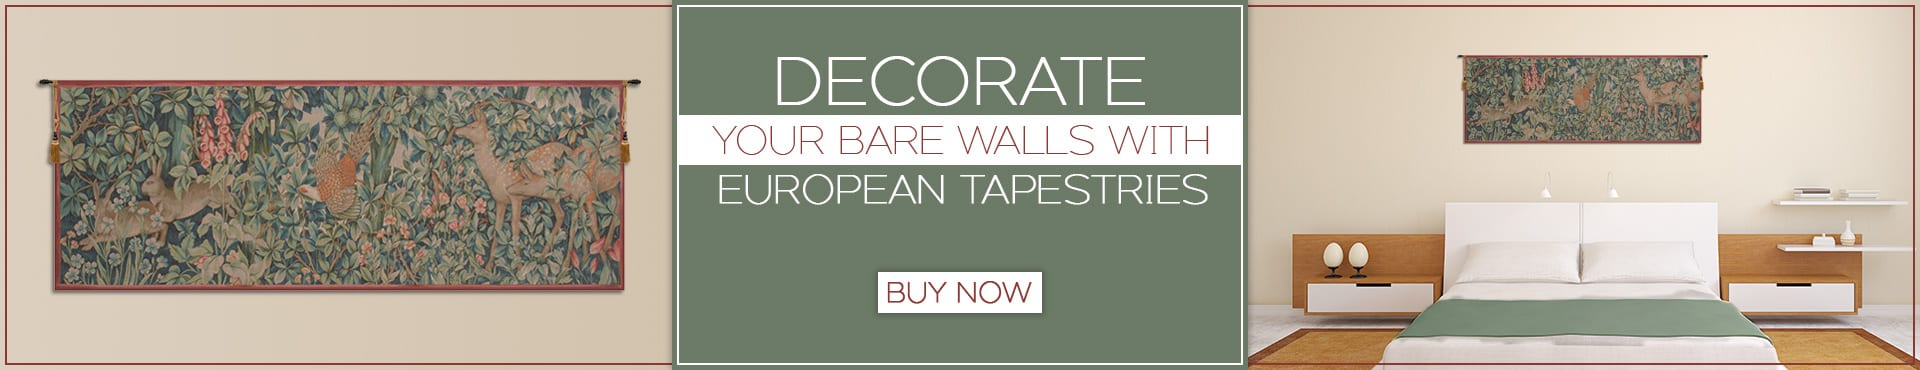 Decorate Your Bare Walls with European Tapestries